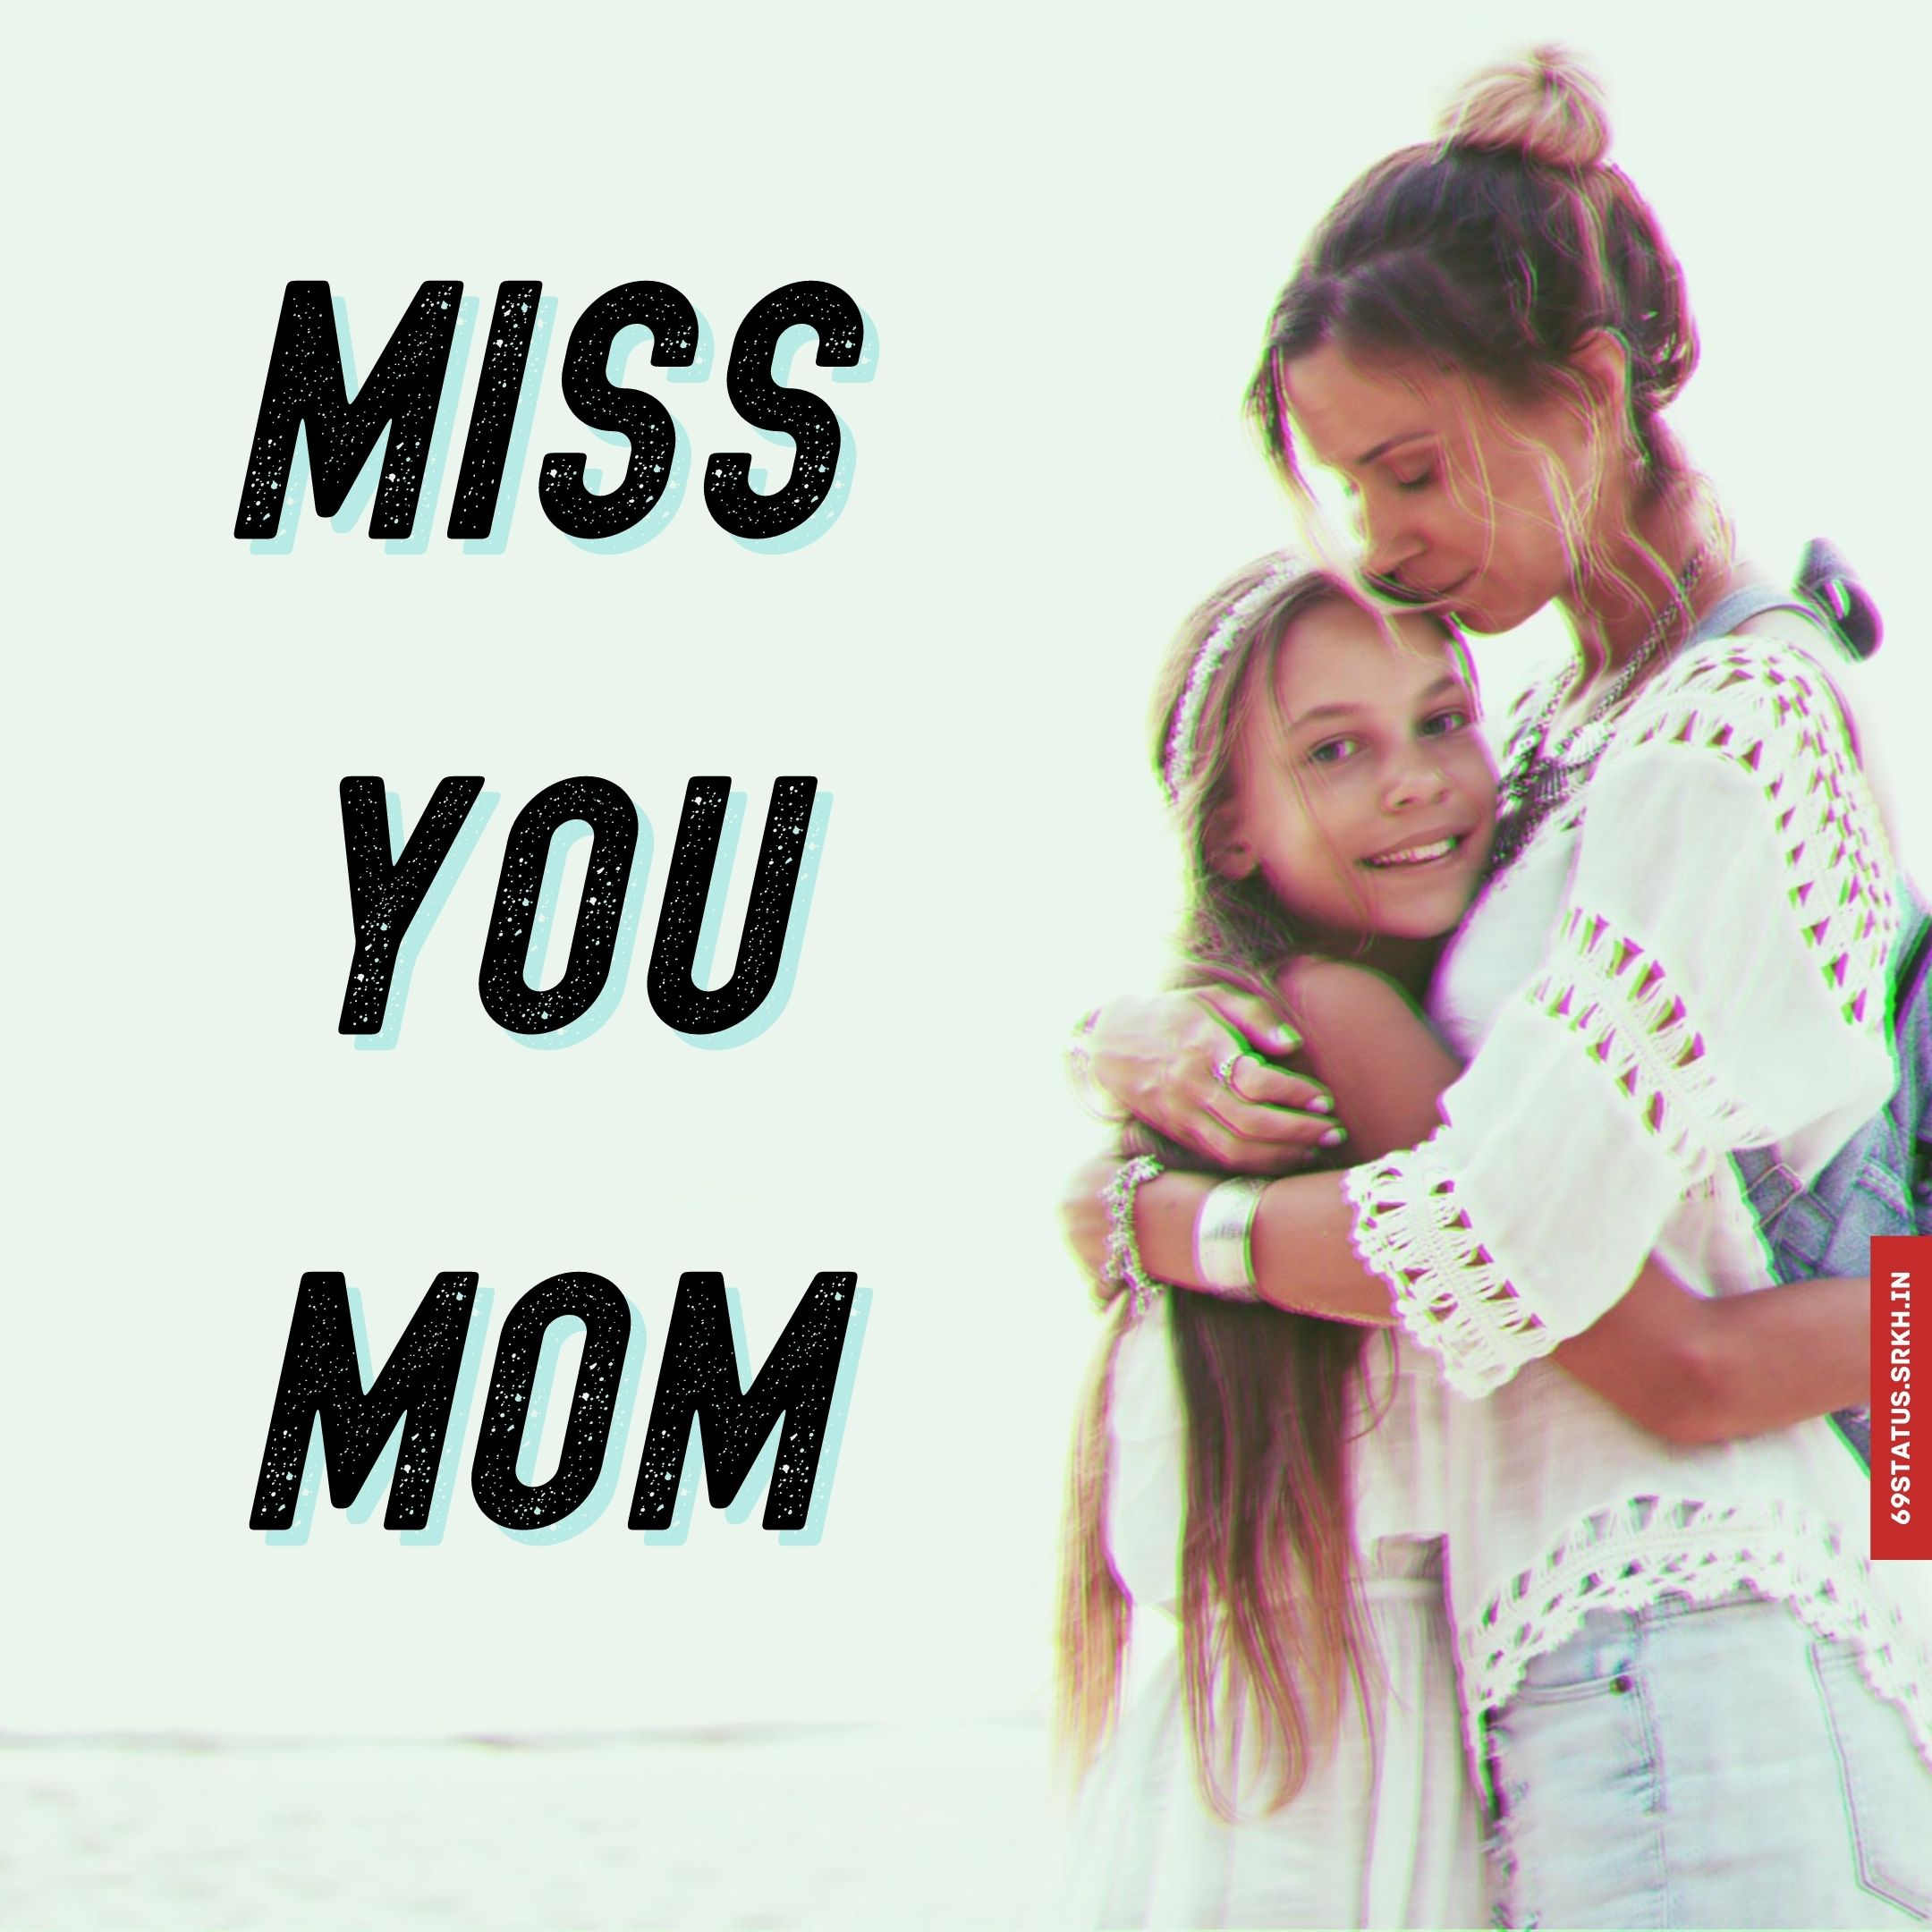 Miss you mom images full HD free download.